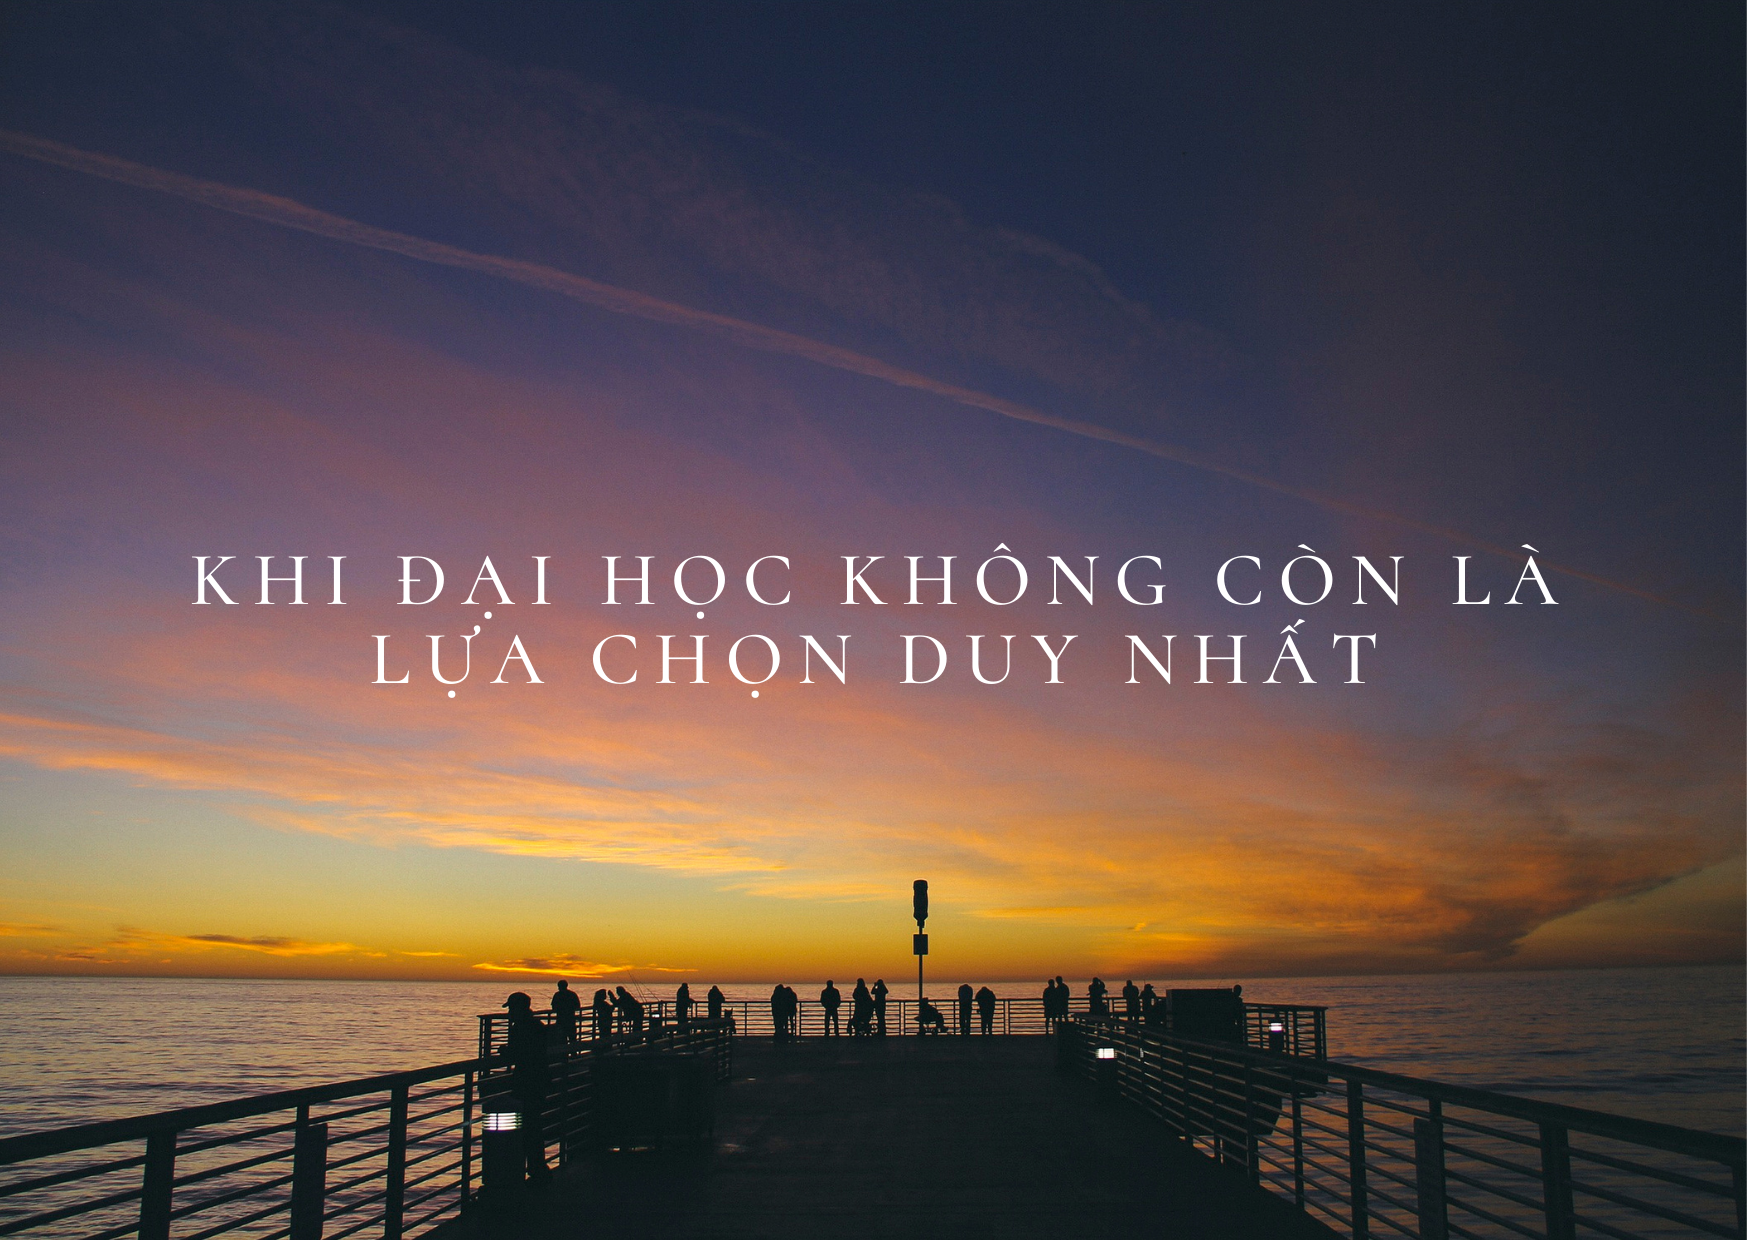 Nghe Nghiep On Dinh